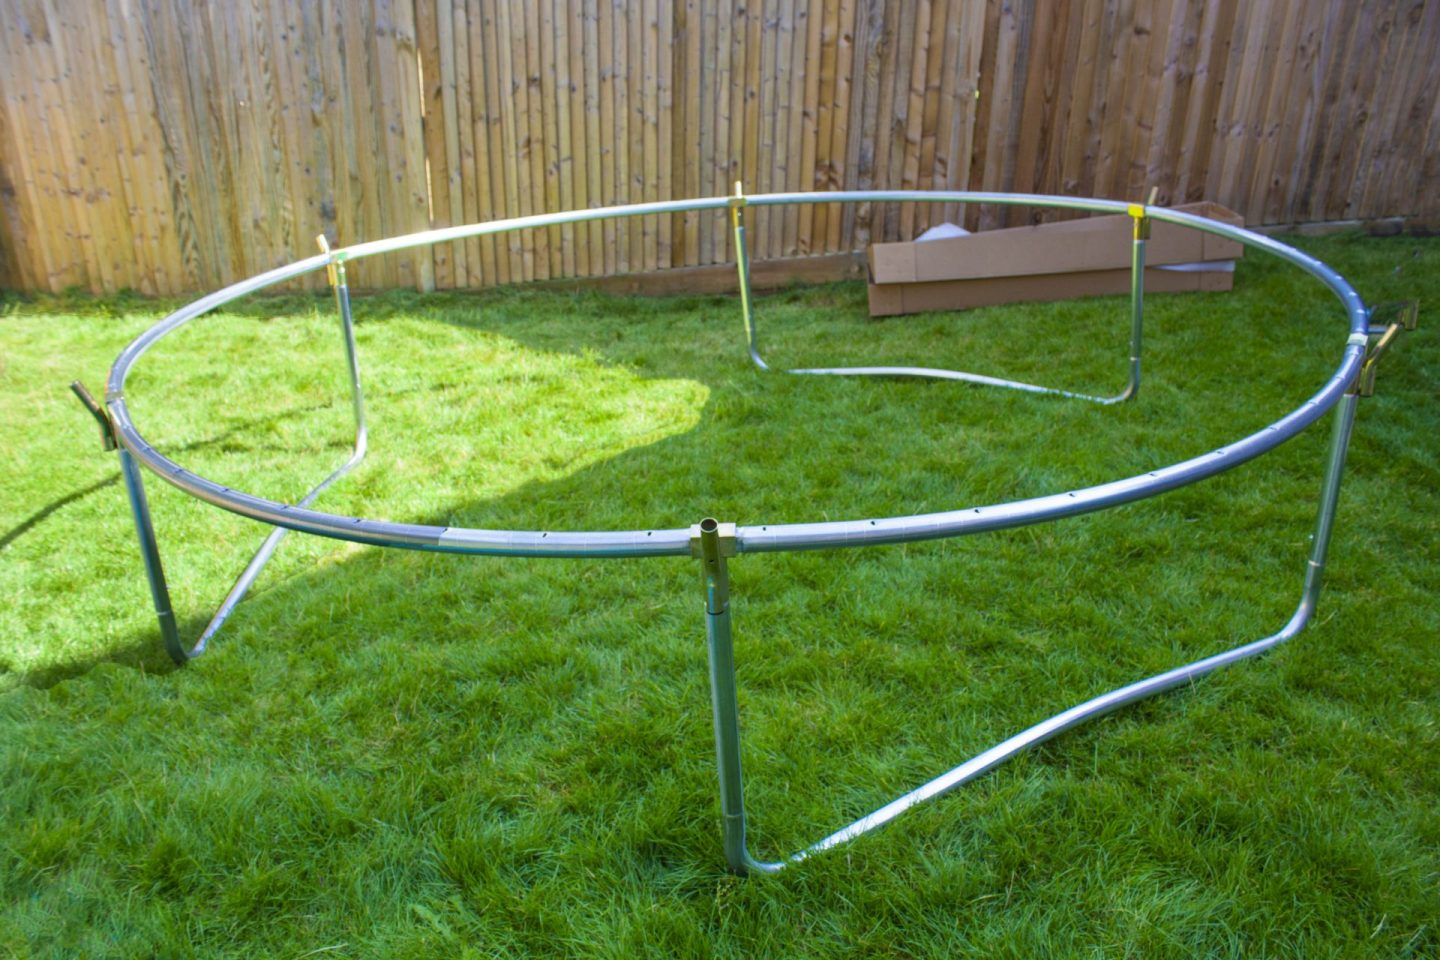 building a trampoline, constructing a trampoline, trampoline